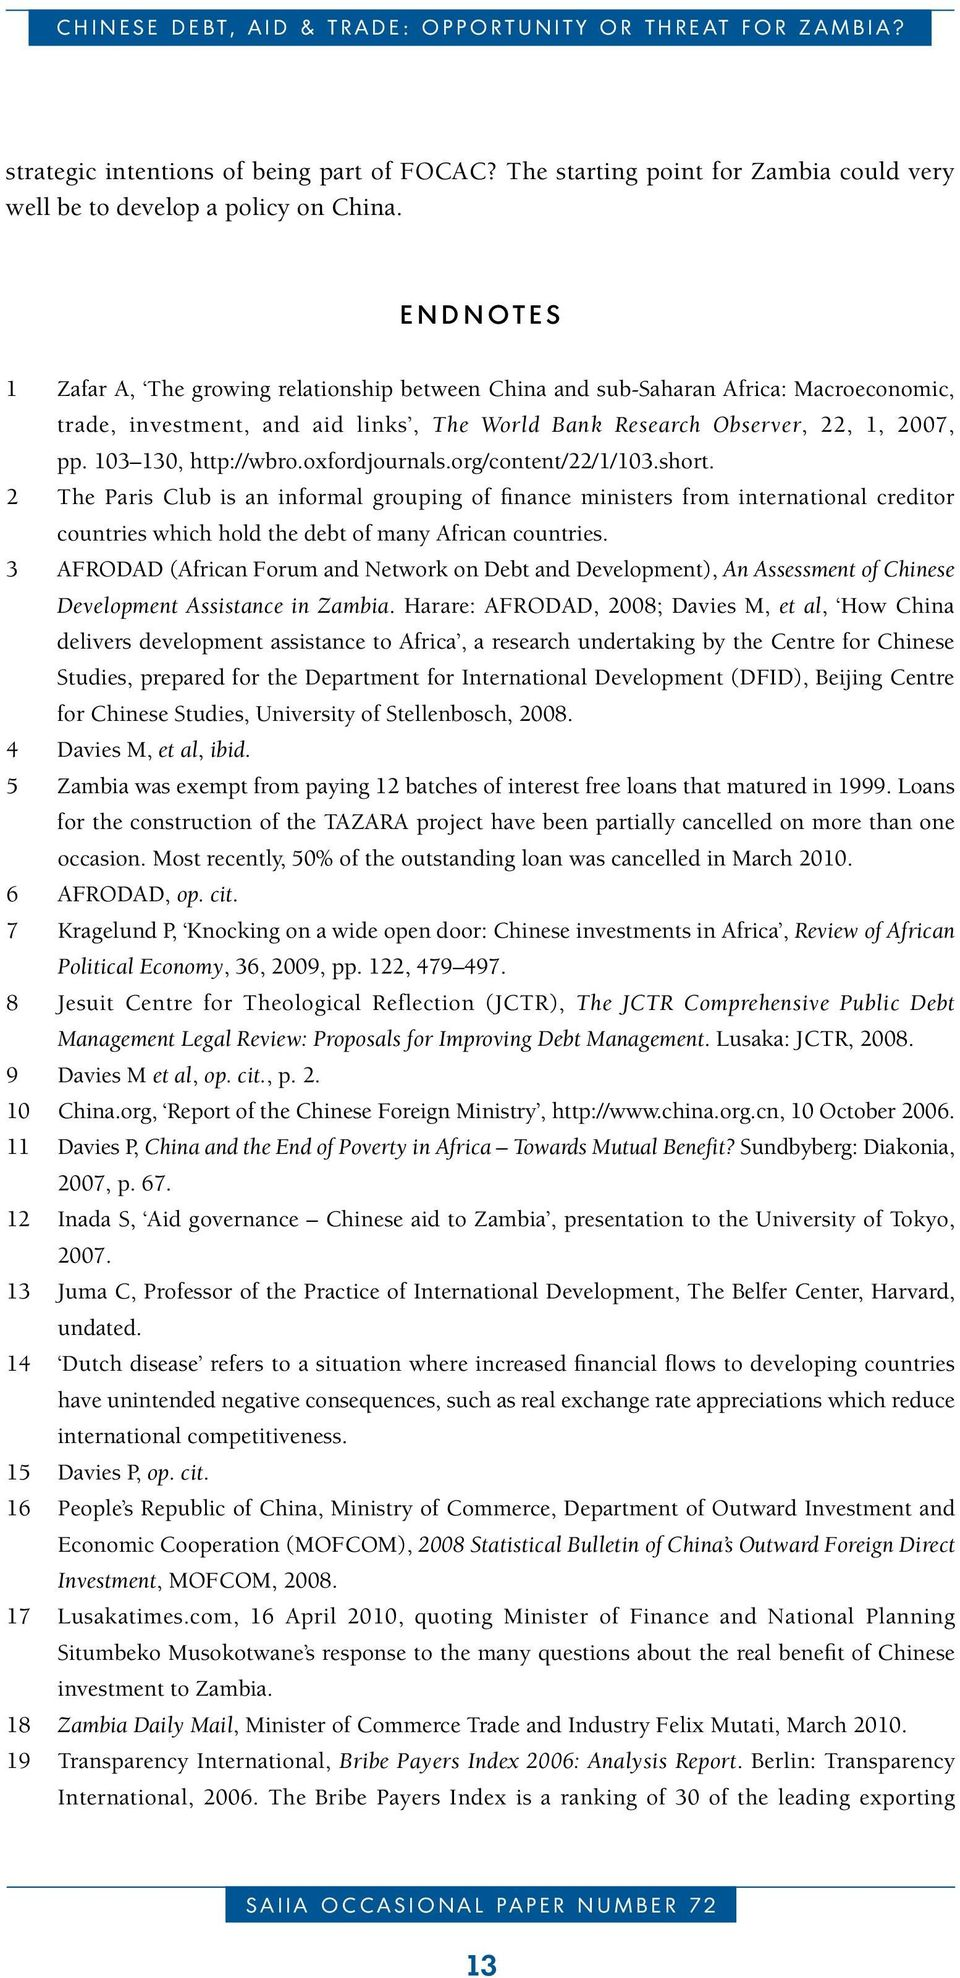 E n d n o t e s 1 Zafar A, The growing relationship between China and sub-saharan Africa: Macroeconomic, trade, investment, and aid links, The World Bank Research Observer, 22, 1, 2007, pp.